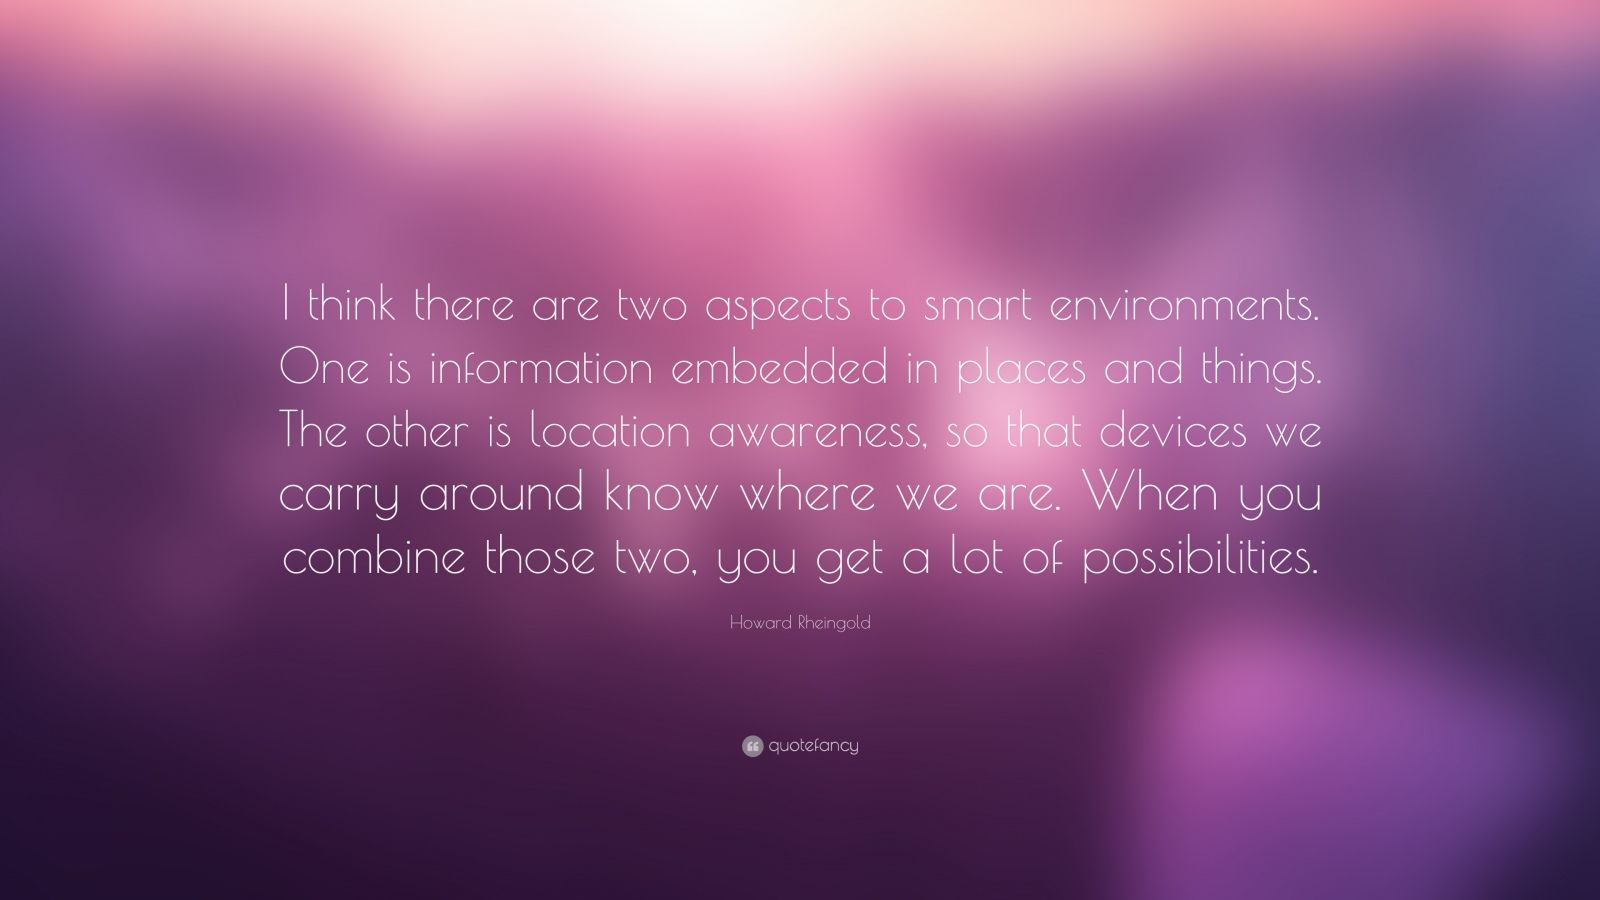 "Howard Rheingold Quote: ""I think there are two aspects to smart environments. One is information embedded in places and things. The other is location awareness, so that devices we carry around know where we are. When you combine those two, you get a lot of possibilities."""